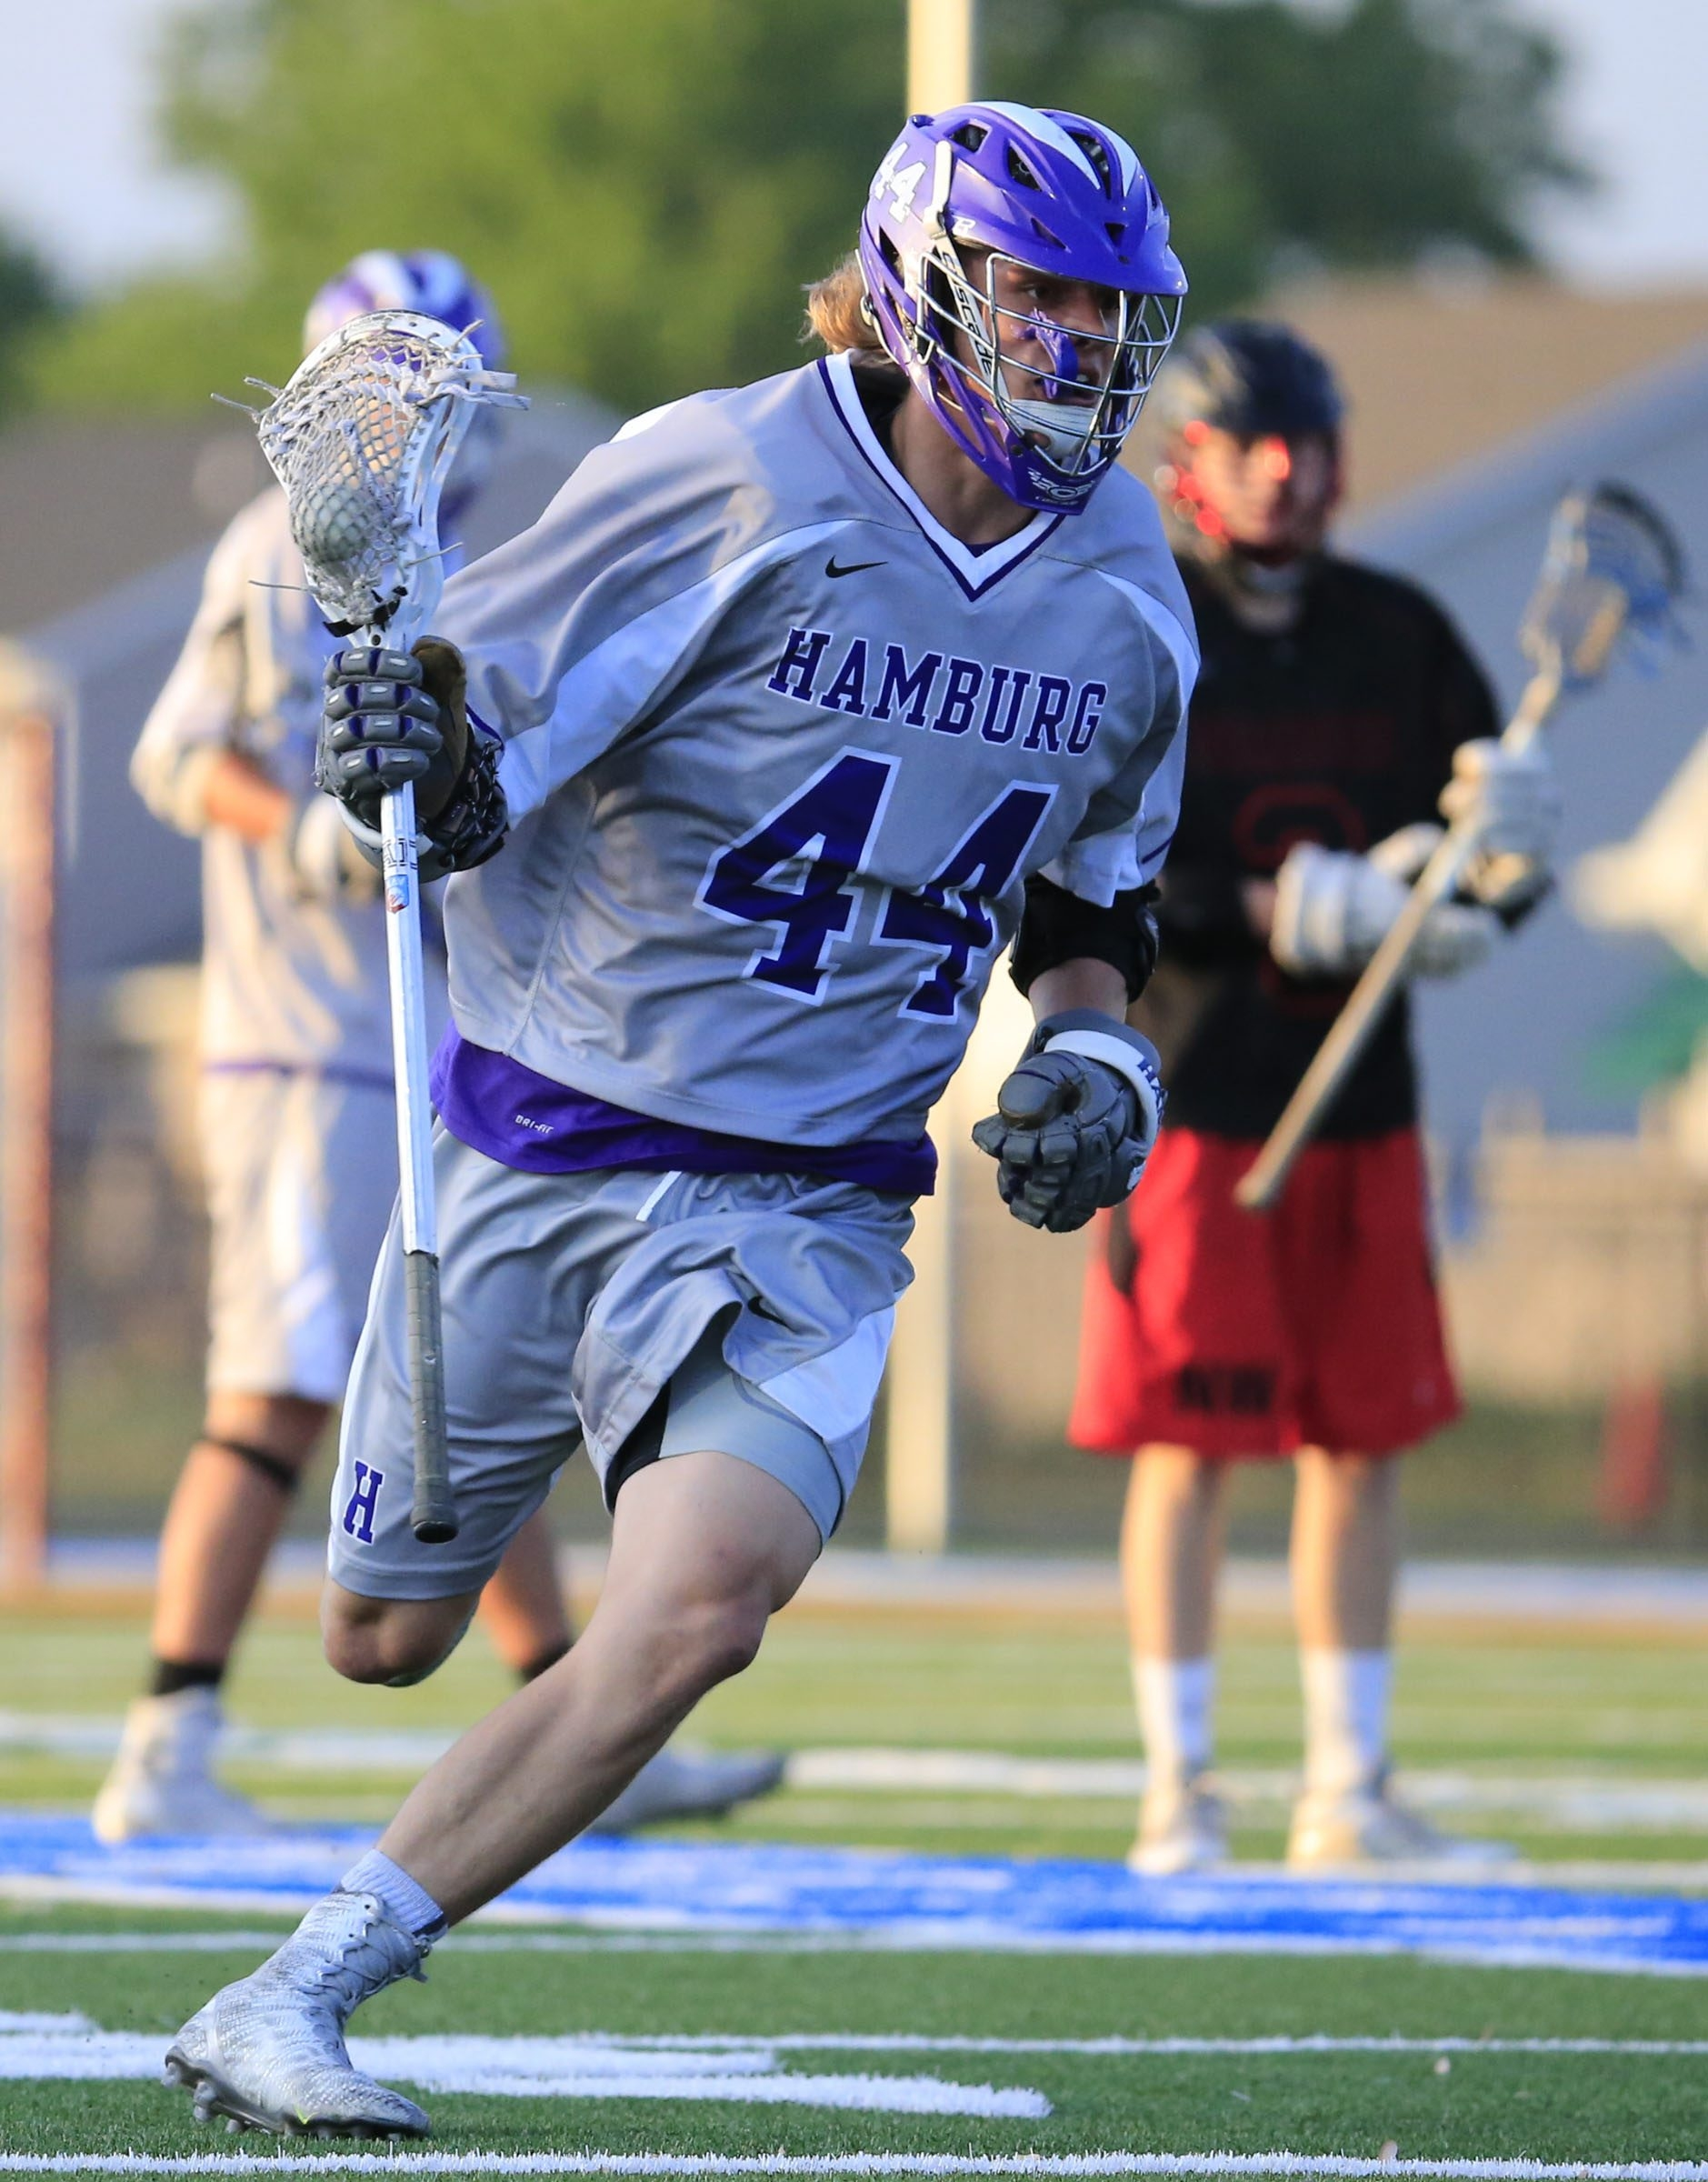 Hamburg's Brendan Ryan is one of the top returning players for the Bulldogs' lacrosse team in Class B.